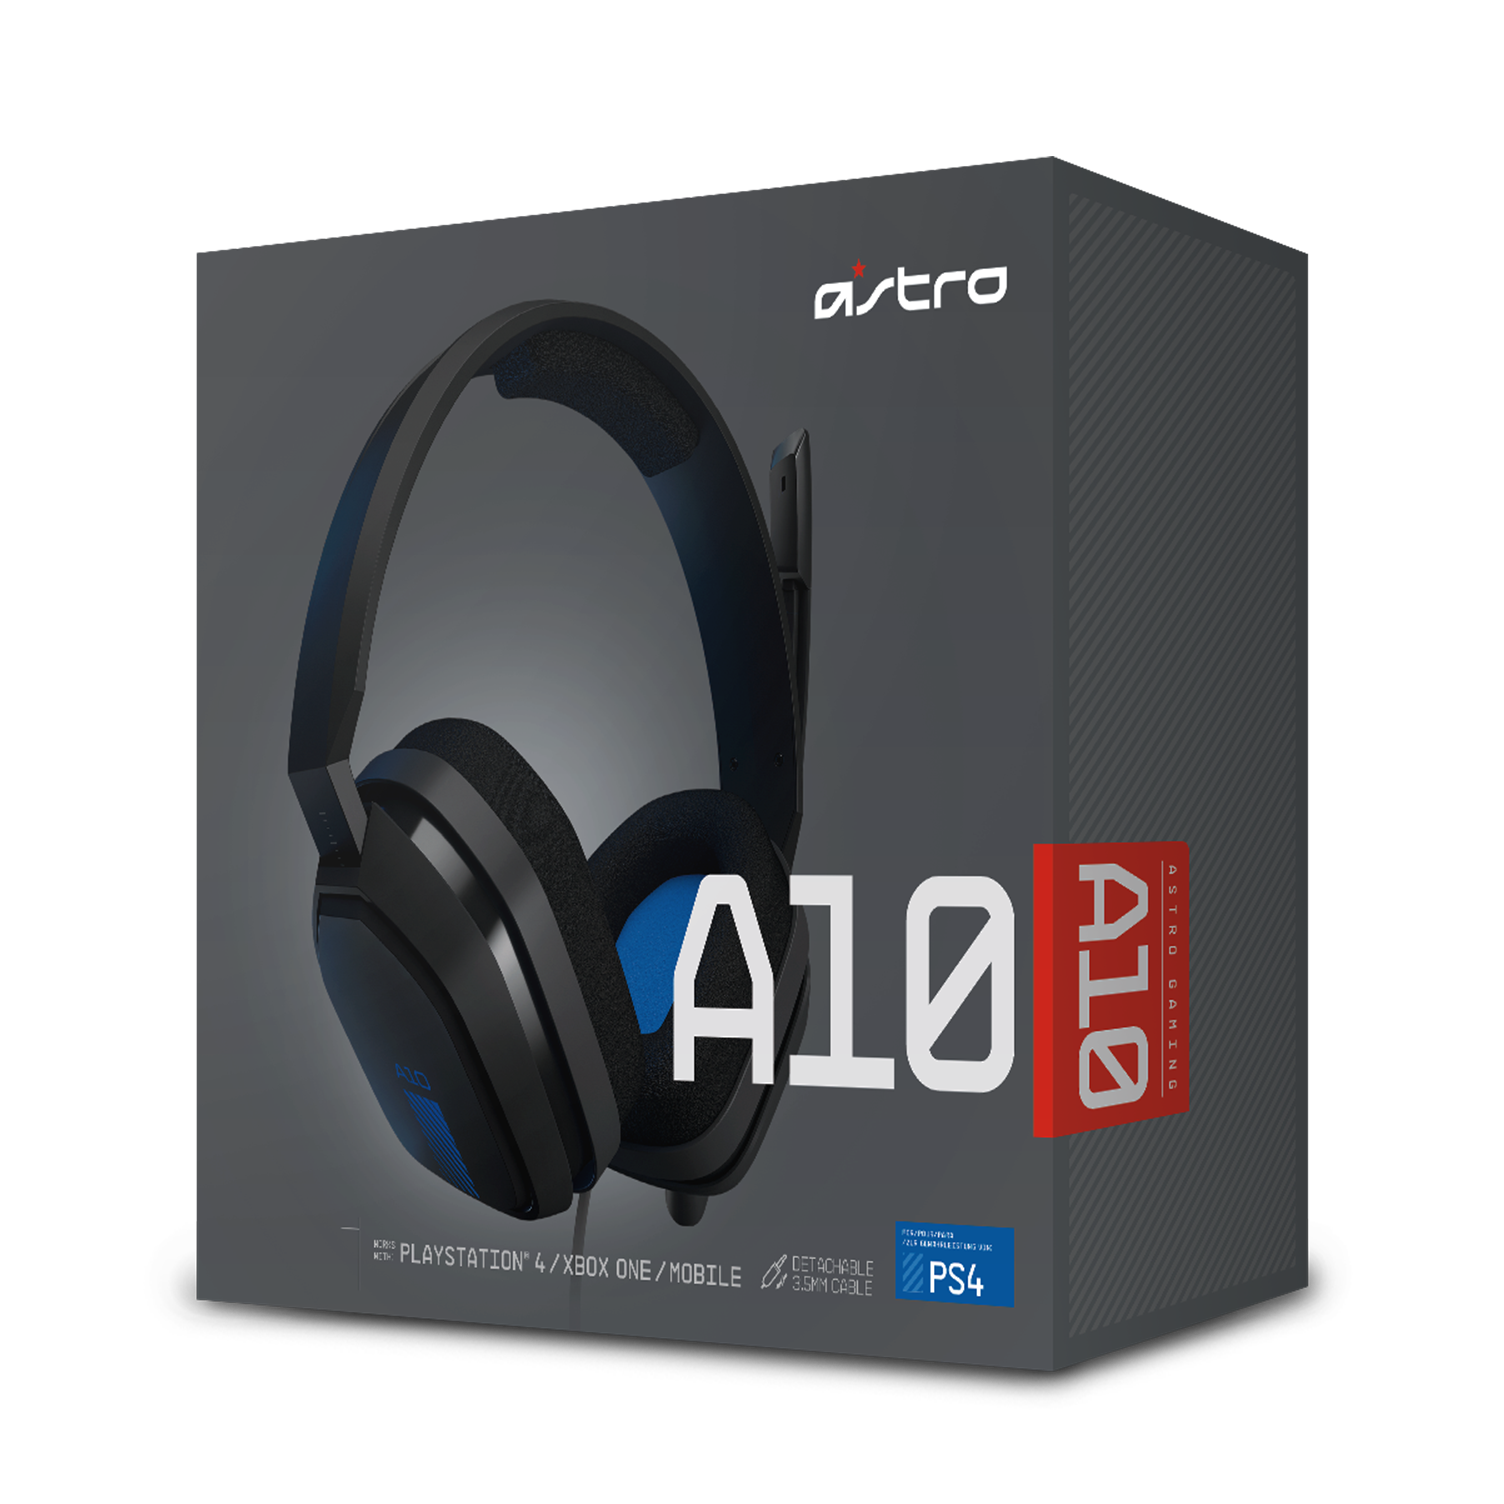 astro-gaming-a10-review-01